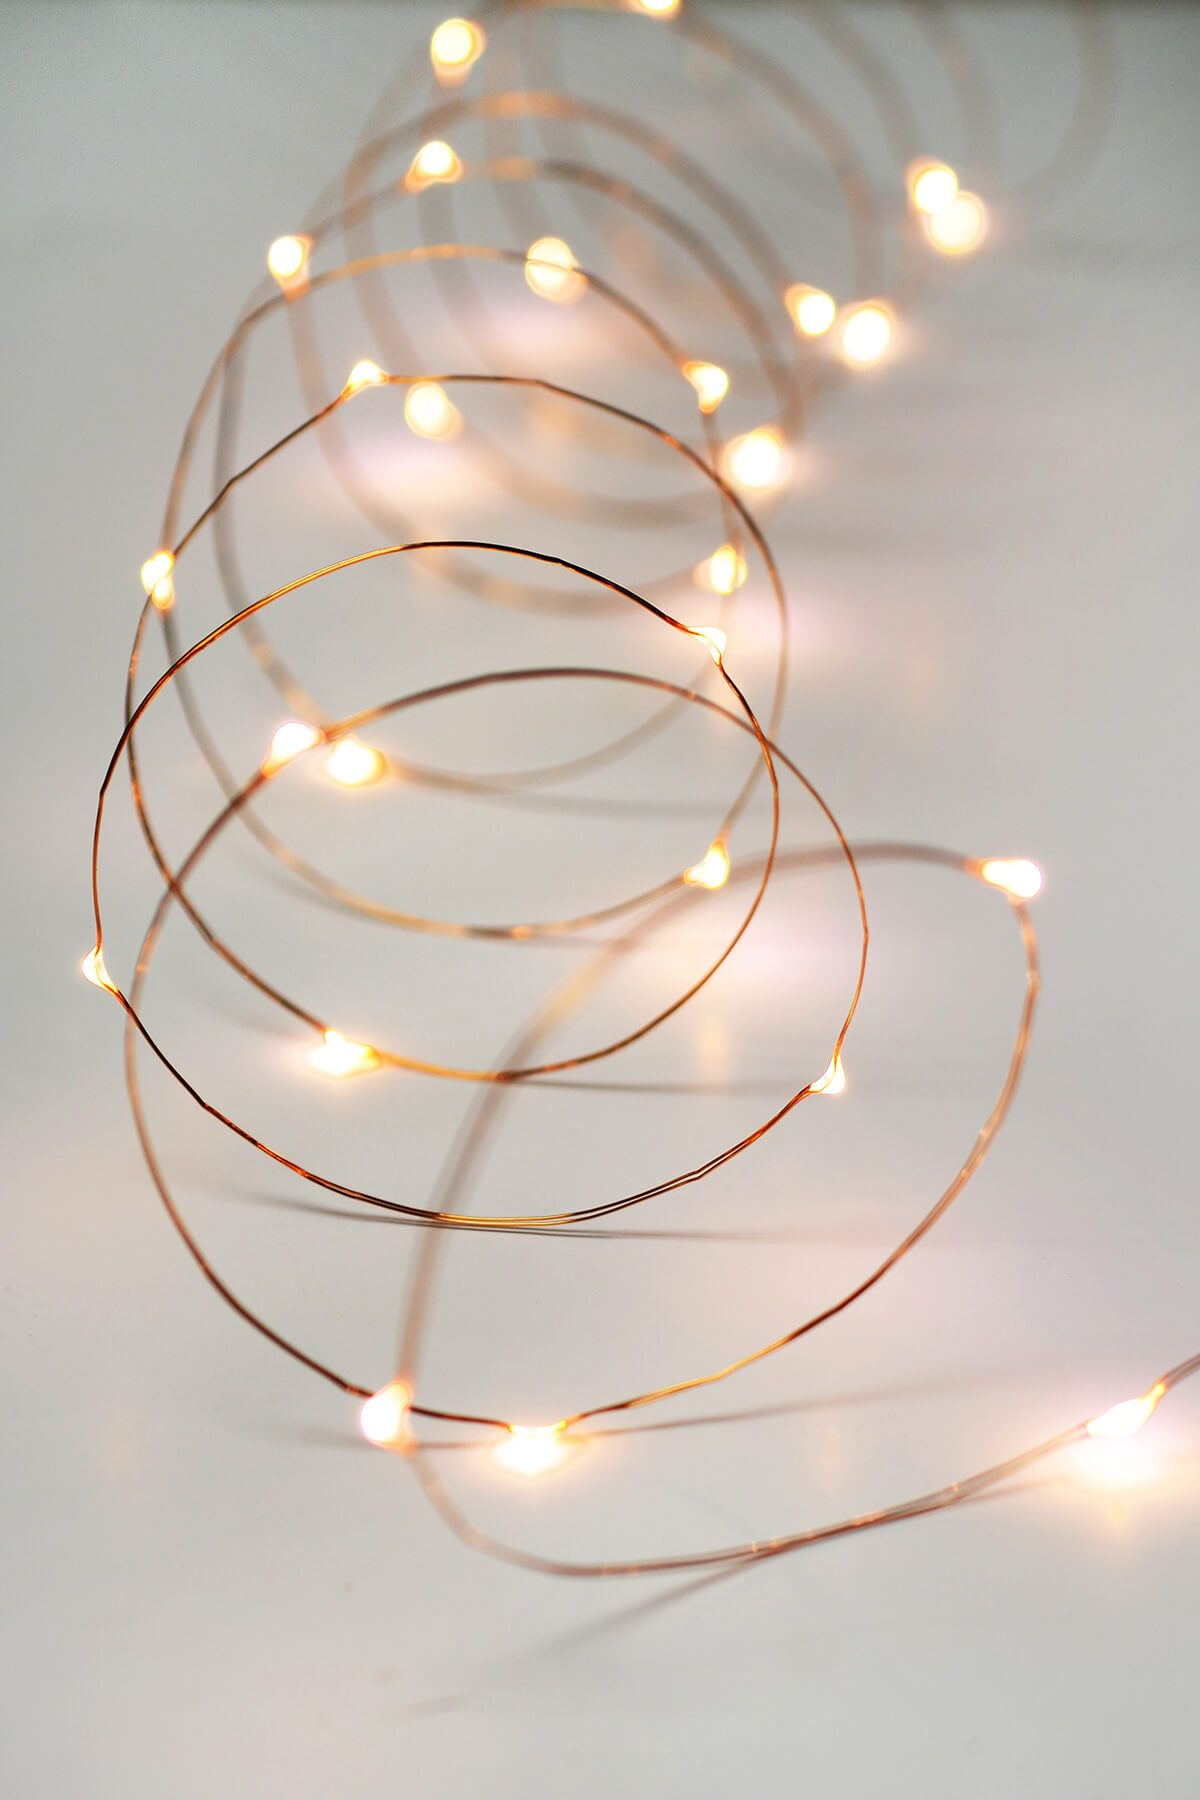 Copper Wire Fairy Lights 10 Ft Outdoor Battery Operated Warm White Rose Gold Fairy Lights Rose Gold Room Decor Rose Gold Wallpaper